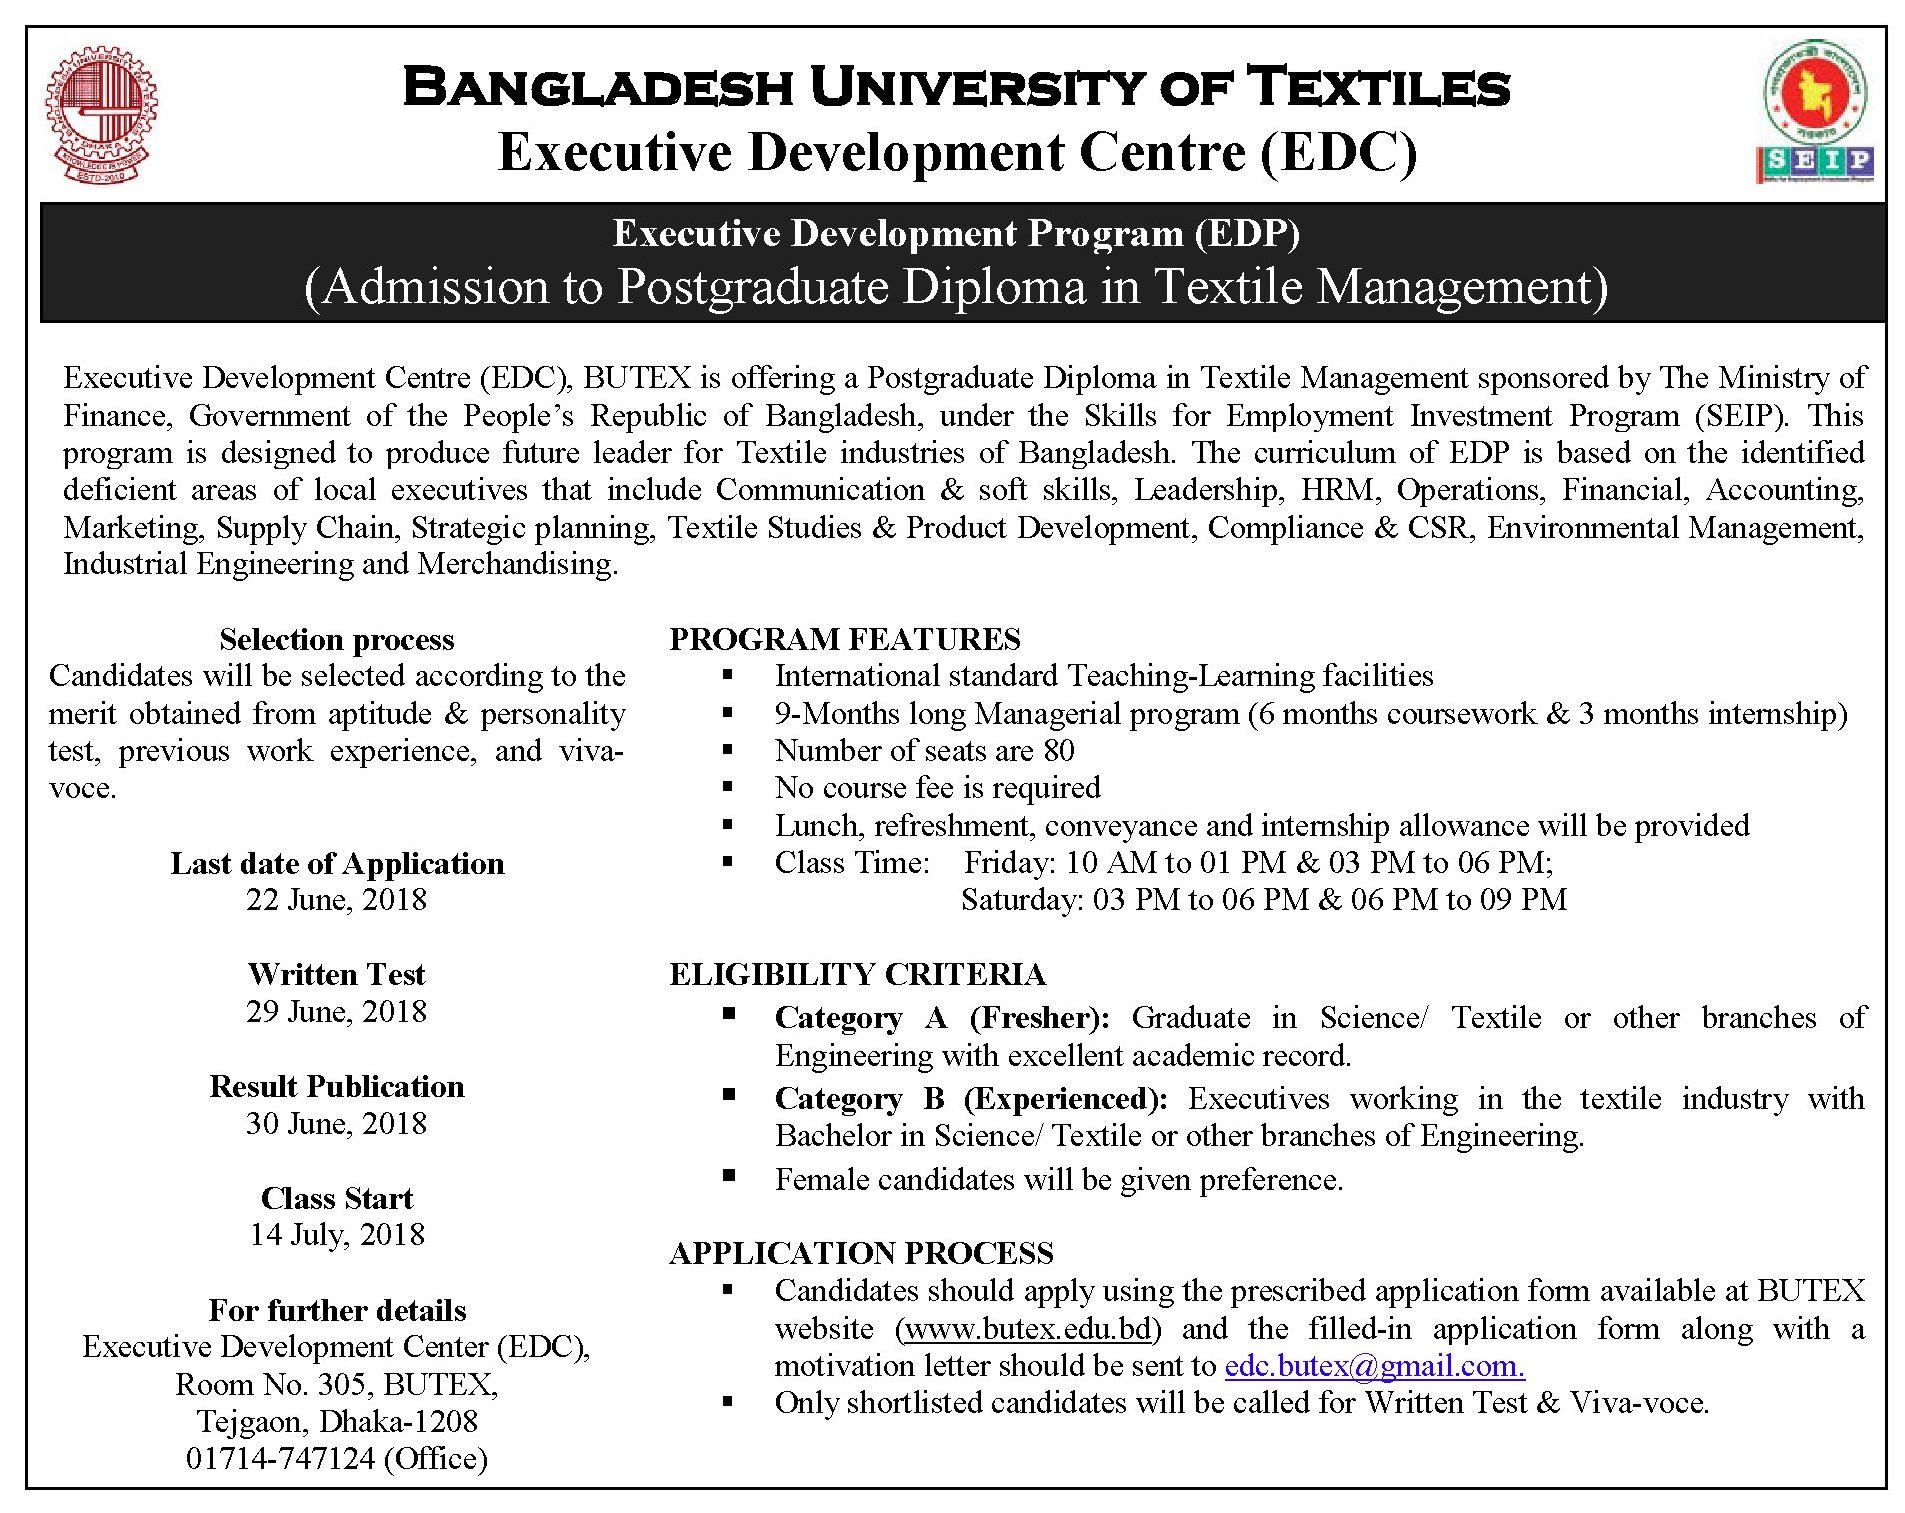 Admission To Postgraduate Diploma In Textile Management (EDP